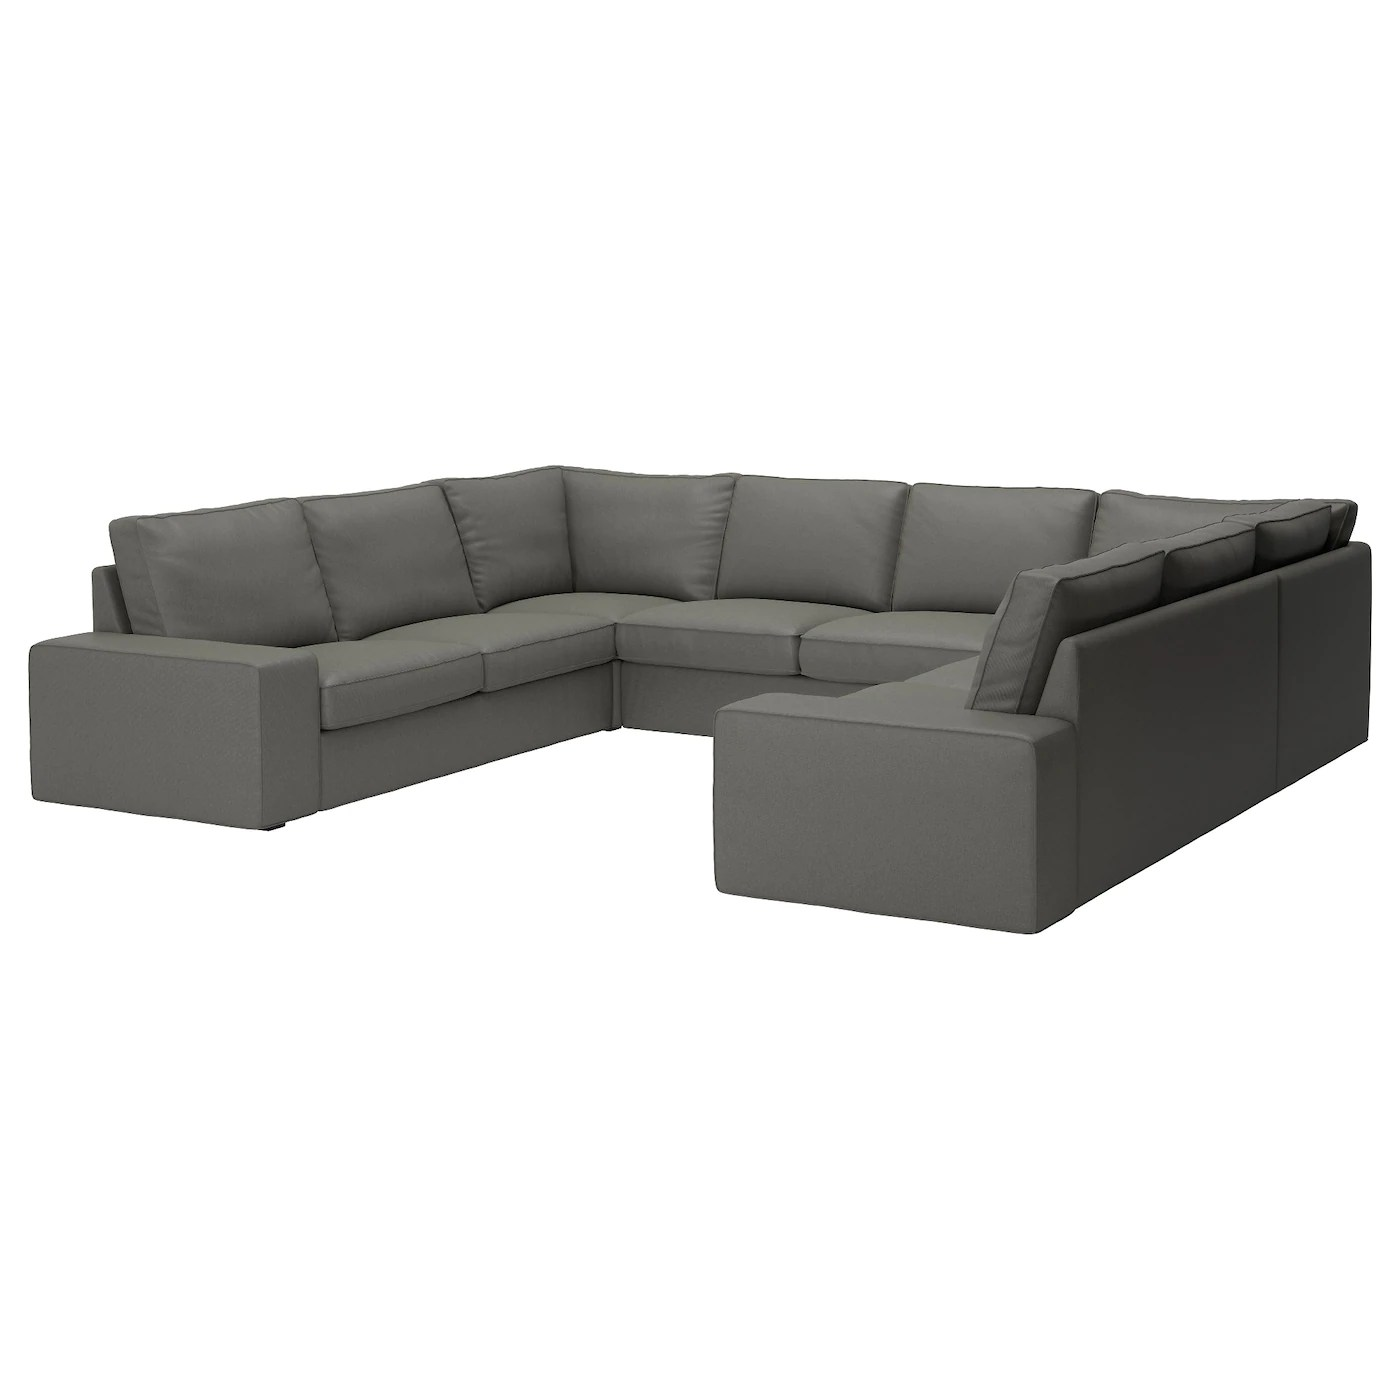 U Form Sofa Ikea Kivik Sofa U Shaped 8 Seater Borred Grey Green Ikea